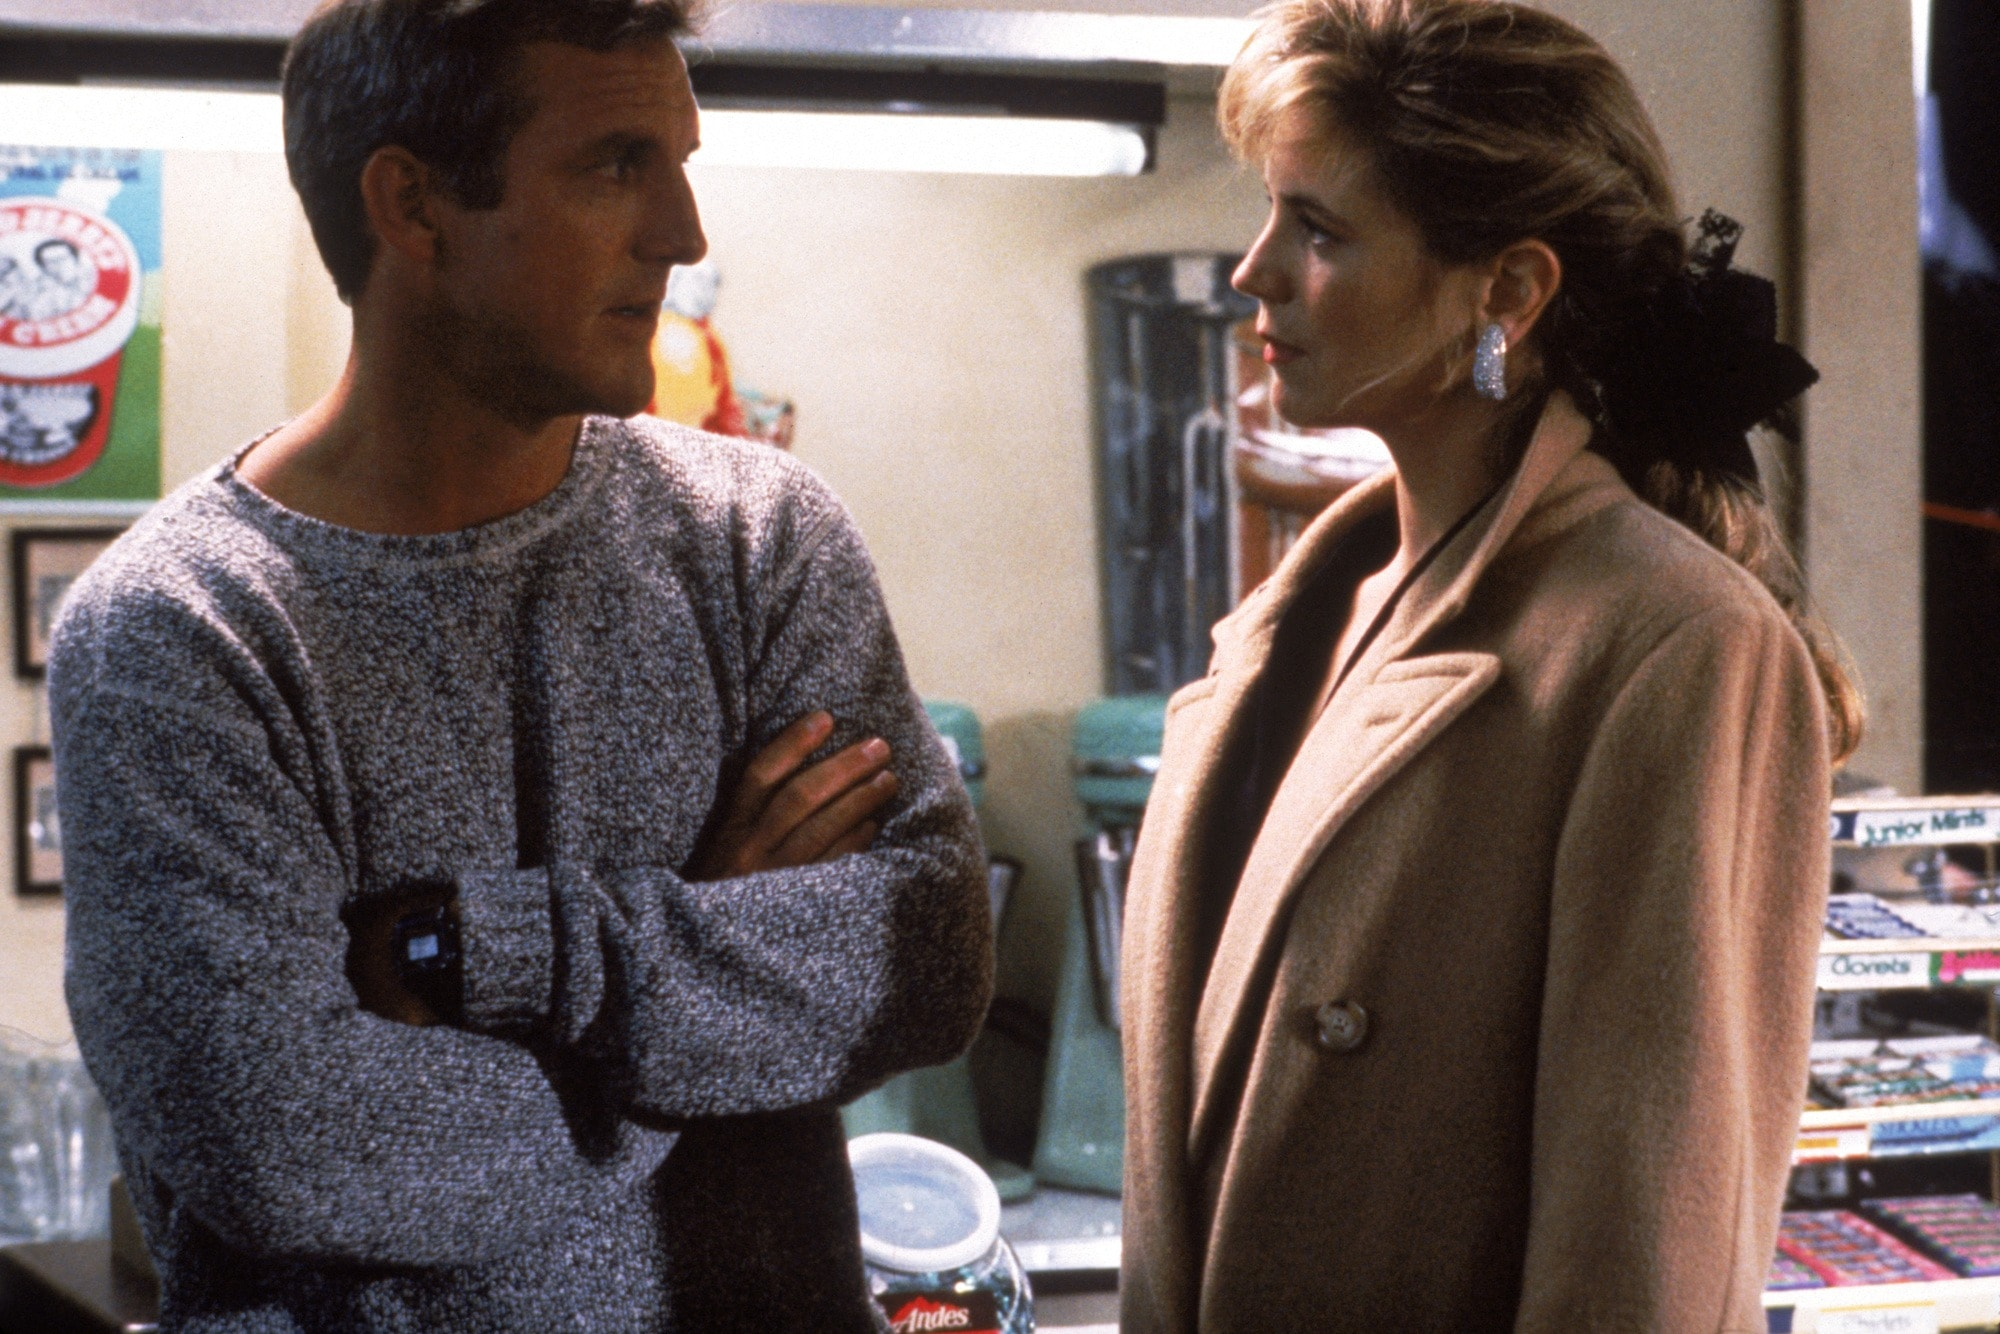 All I Want for Christmas: Jane Kozak as Catherine O'Fallon, with her bronde hair styled into low ponytail with a bow, wearing a statement earring and camel coat on set, while talking to Micheal O'Fallon